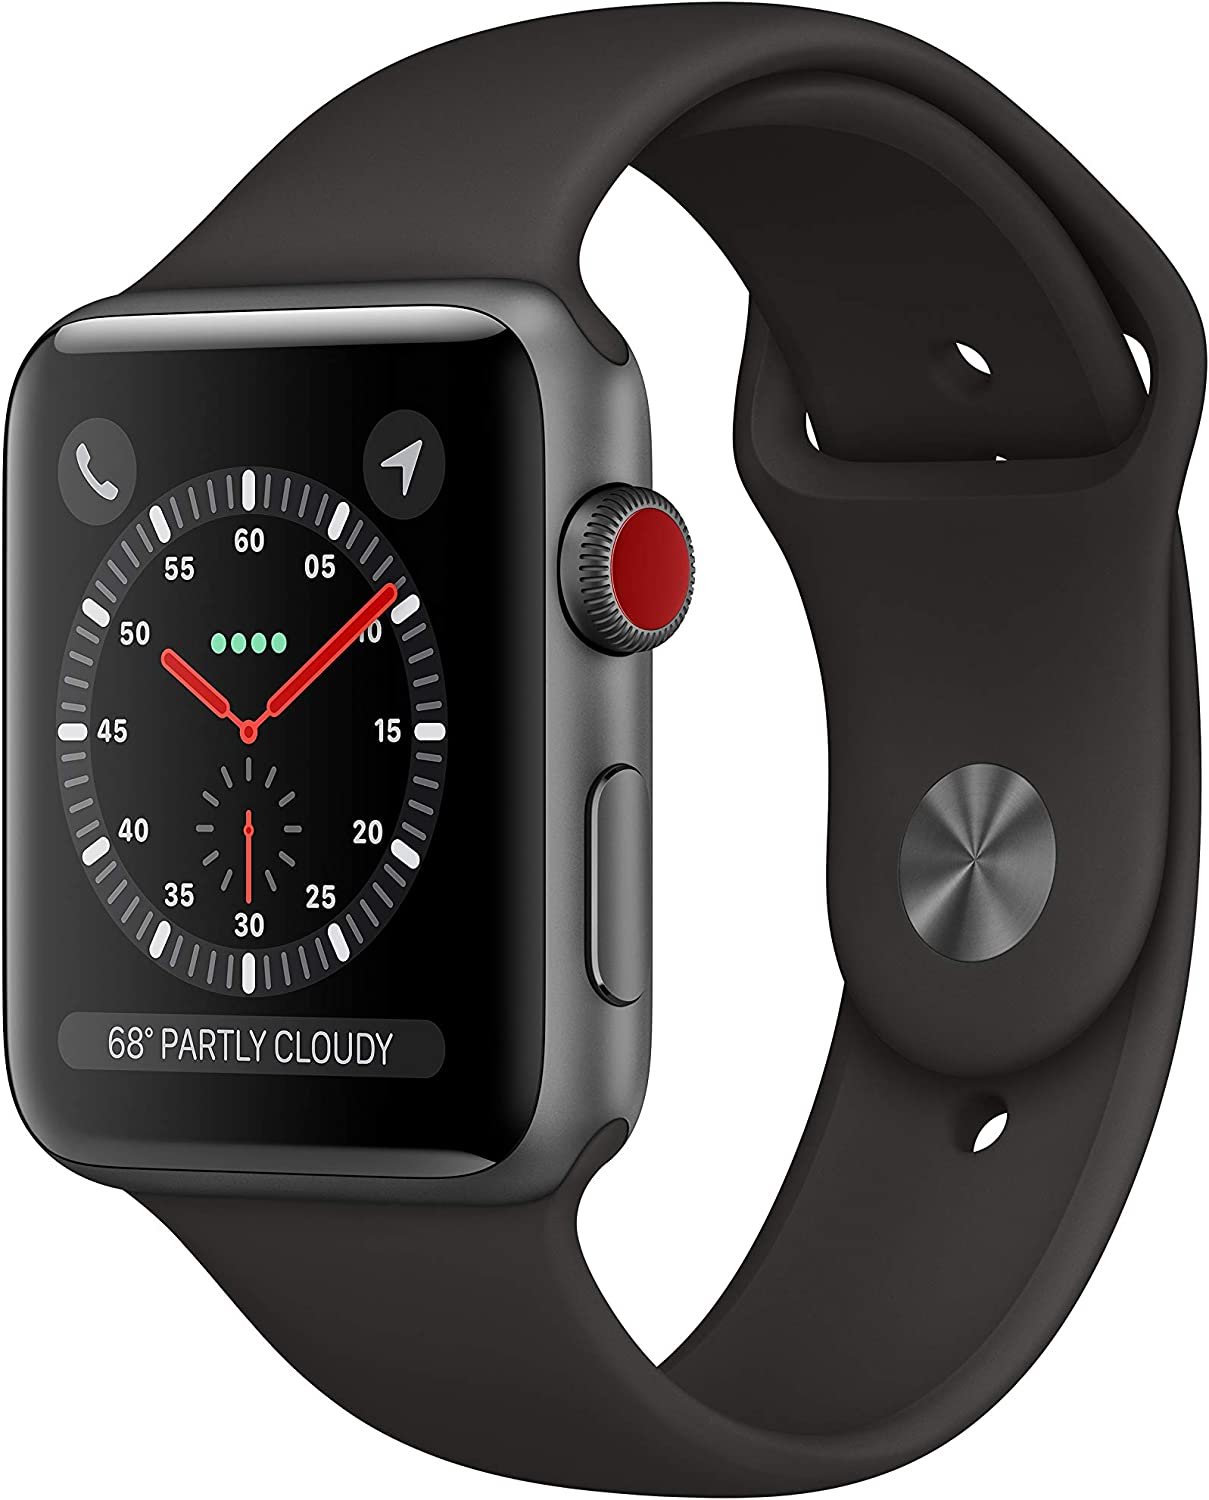 AppleWatch Series3 (Gps+Cellular, 42mm) - Space Gray Aluminum Case with Black sport Band